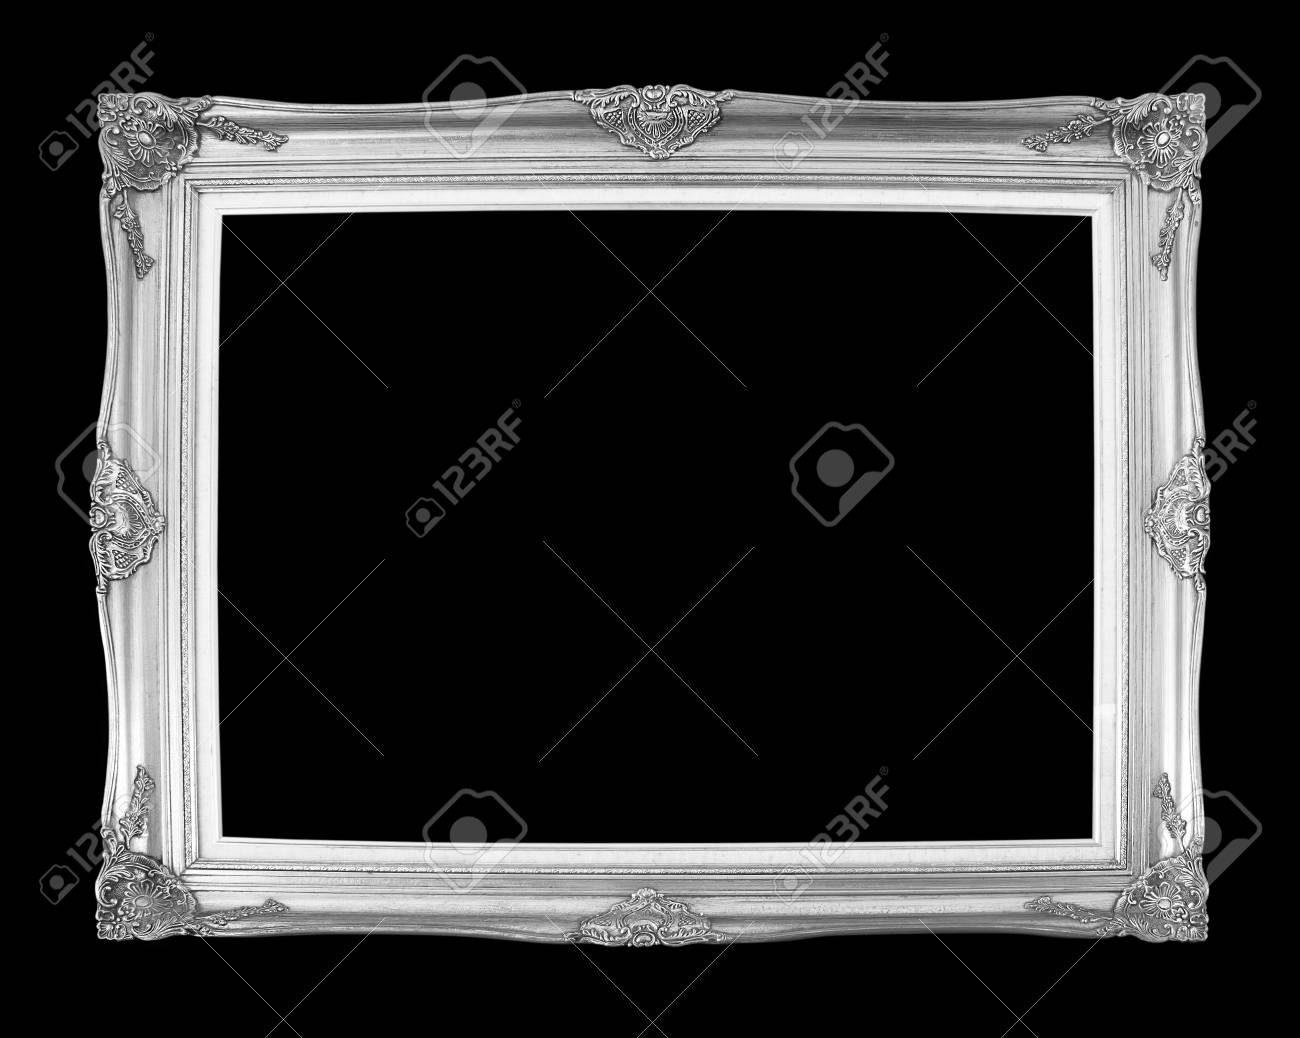 silver antique picture frames. Silver Antique Picture Frames. Isolated On Black Background Stock Photo - 33303555 Frames